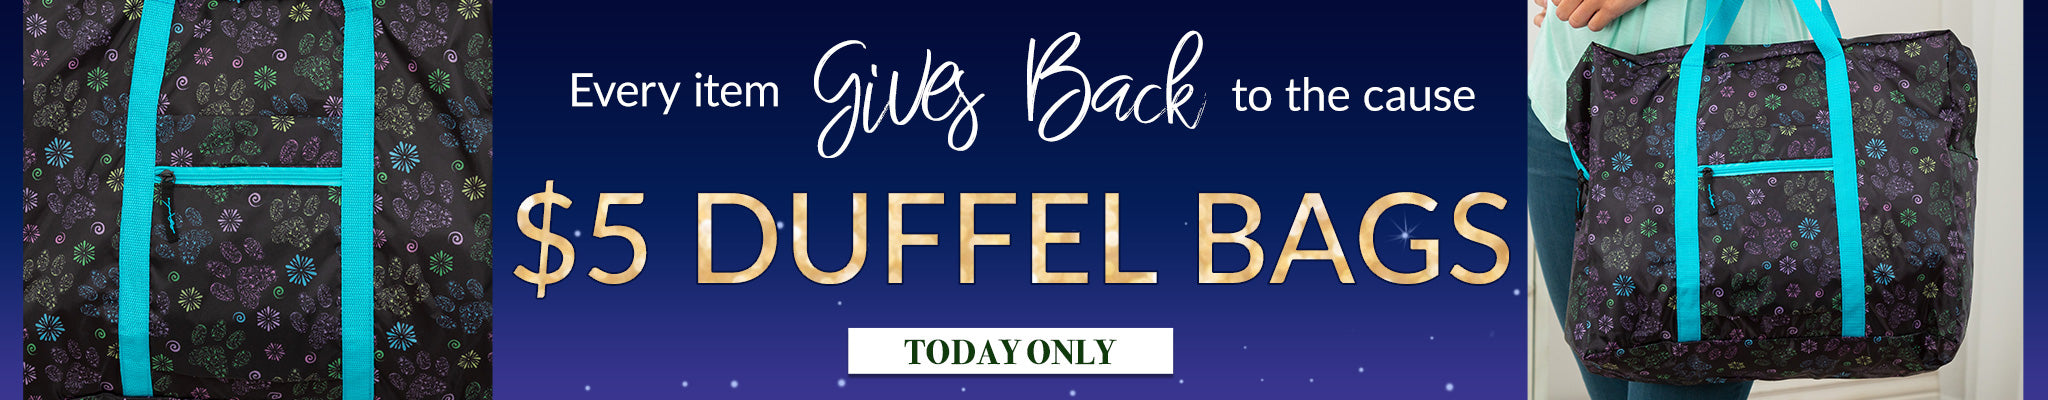 Every Item Gives Back to the Cause | $5 Duffle Bags | Today Only